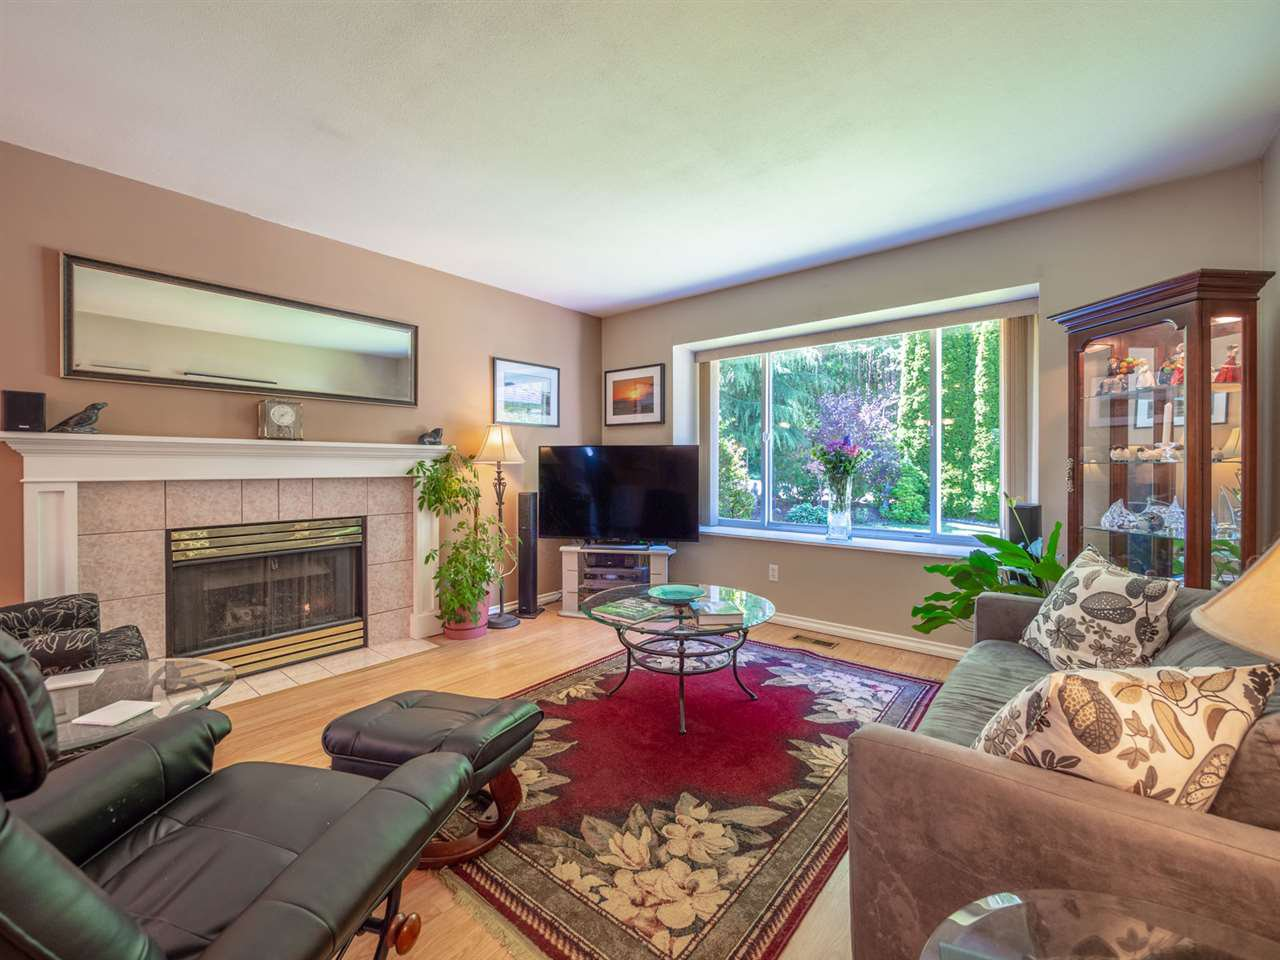 Photo 1: Photos: 5834 REEF Road in Sechelt: Sechelt District House for sale (Sunshine Coast)  : MLS®# R2442223